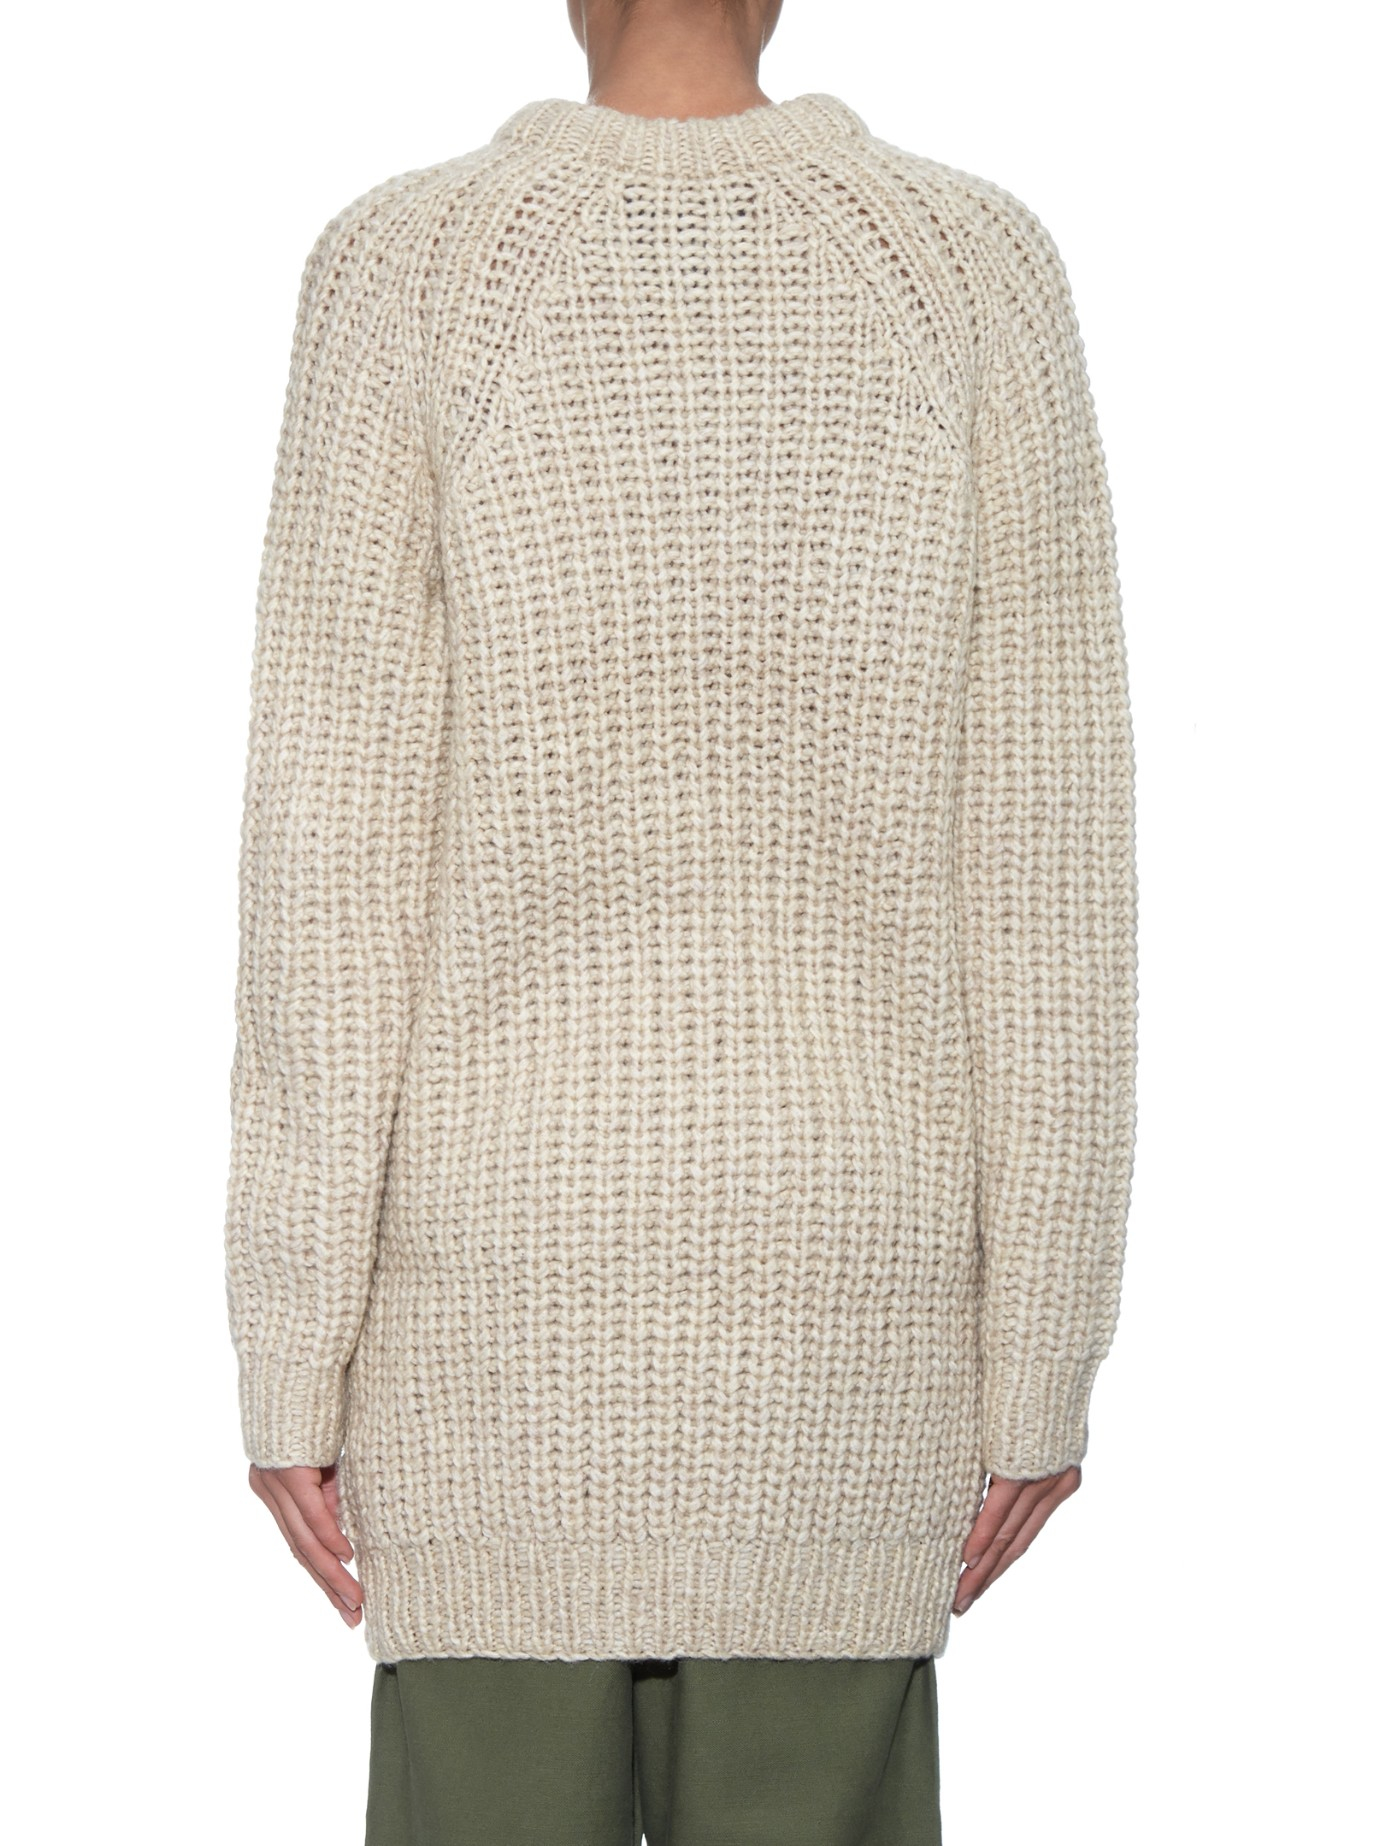 Nlst Fisherman Ribbed-knit Sweater in Natural | Lyst